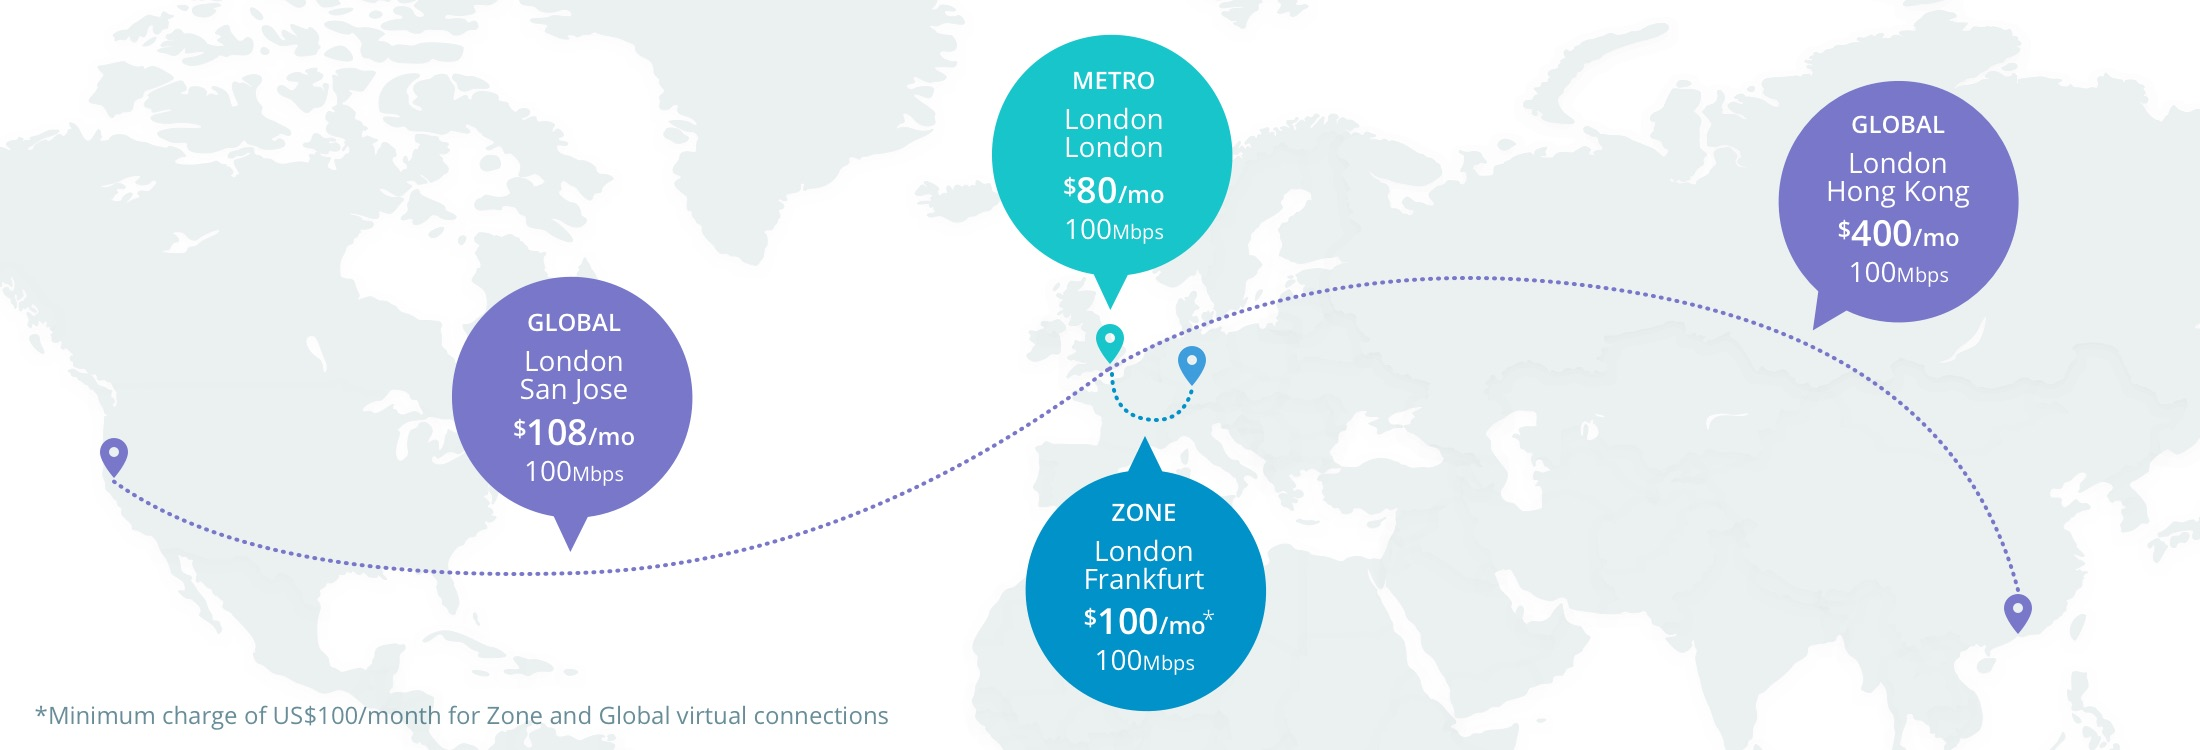 Map showing sample interconnection pricing from London